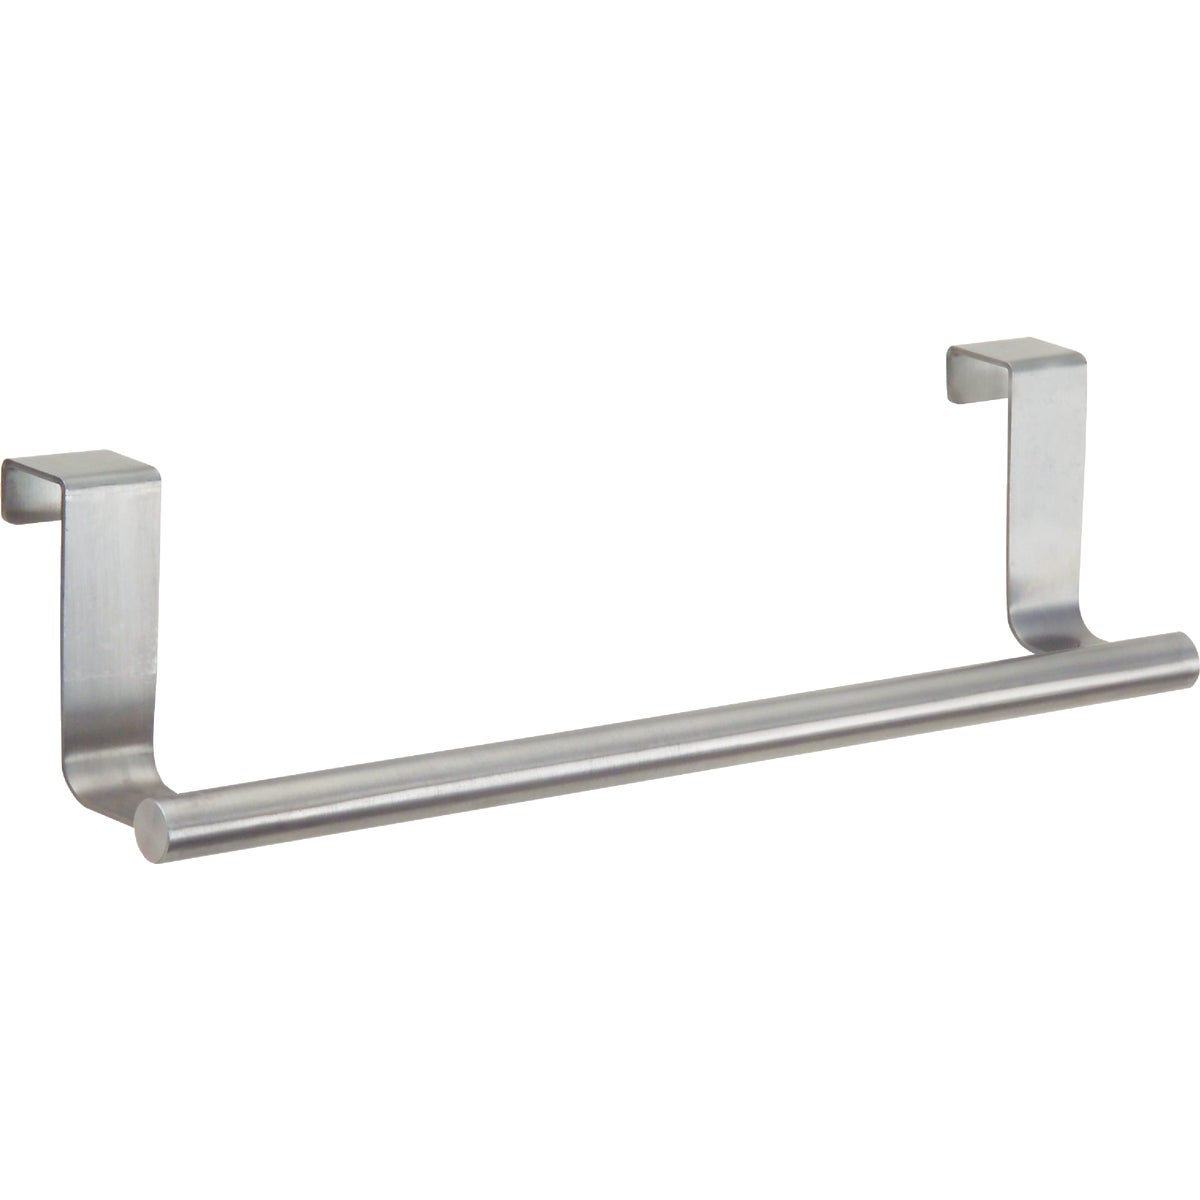 OVER CABINET TOWEL BAR - 29450 by Interdesign Inc